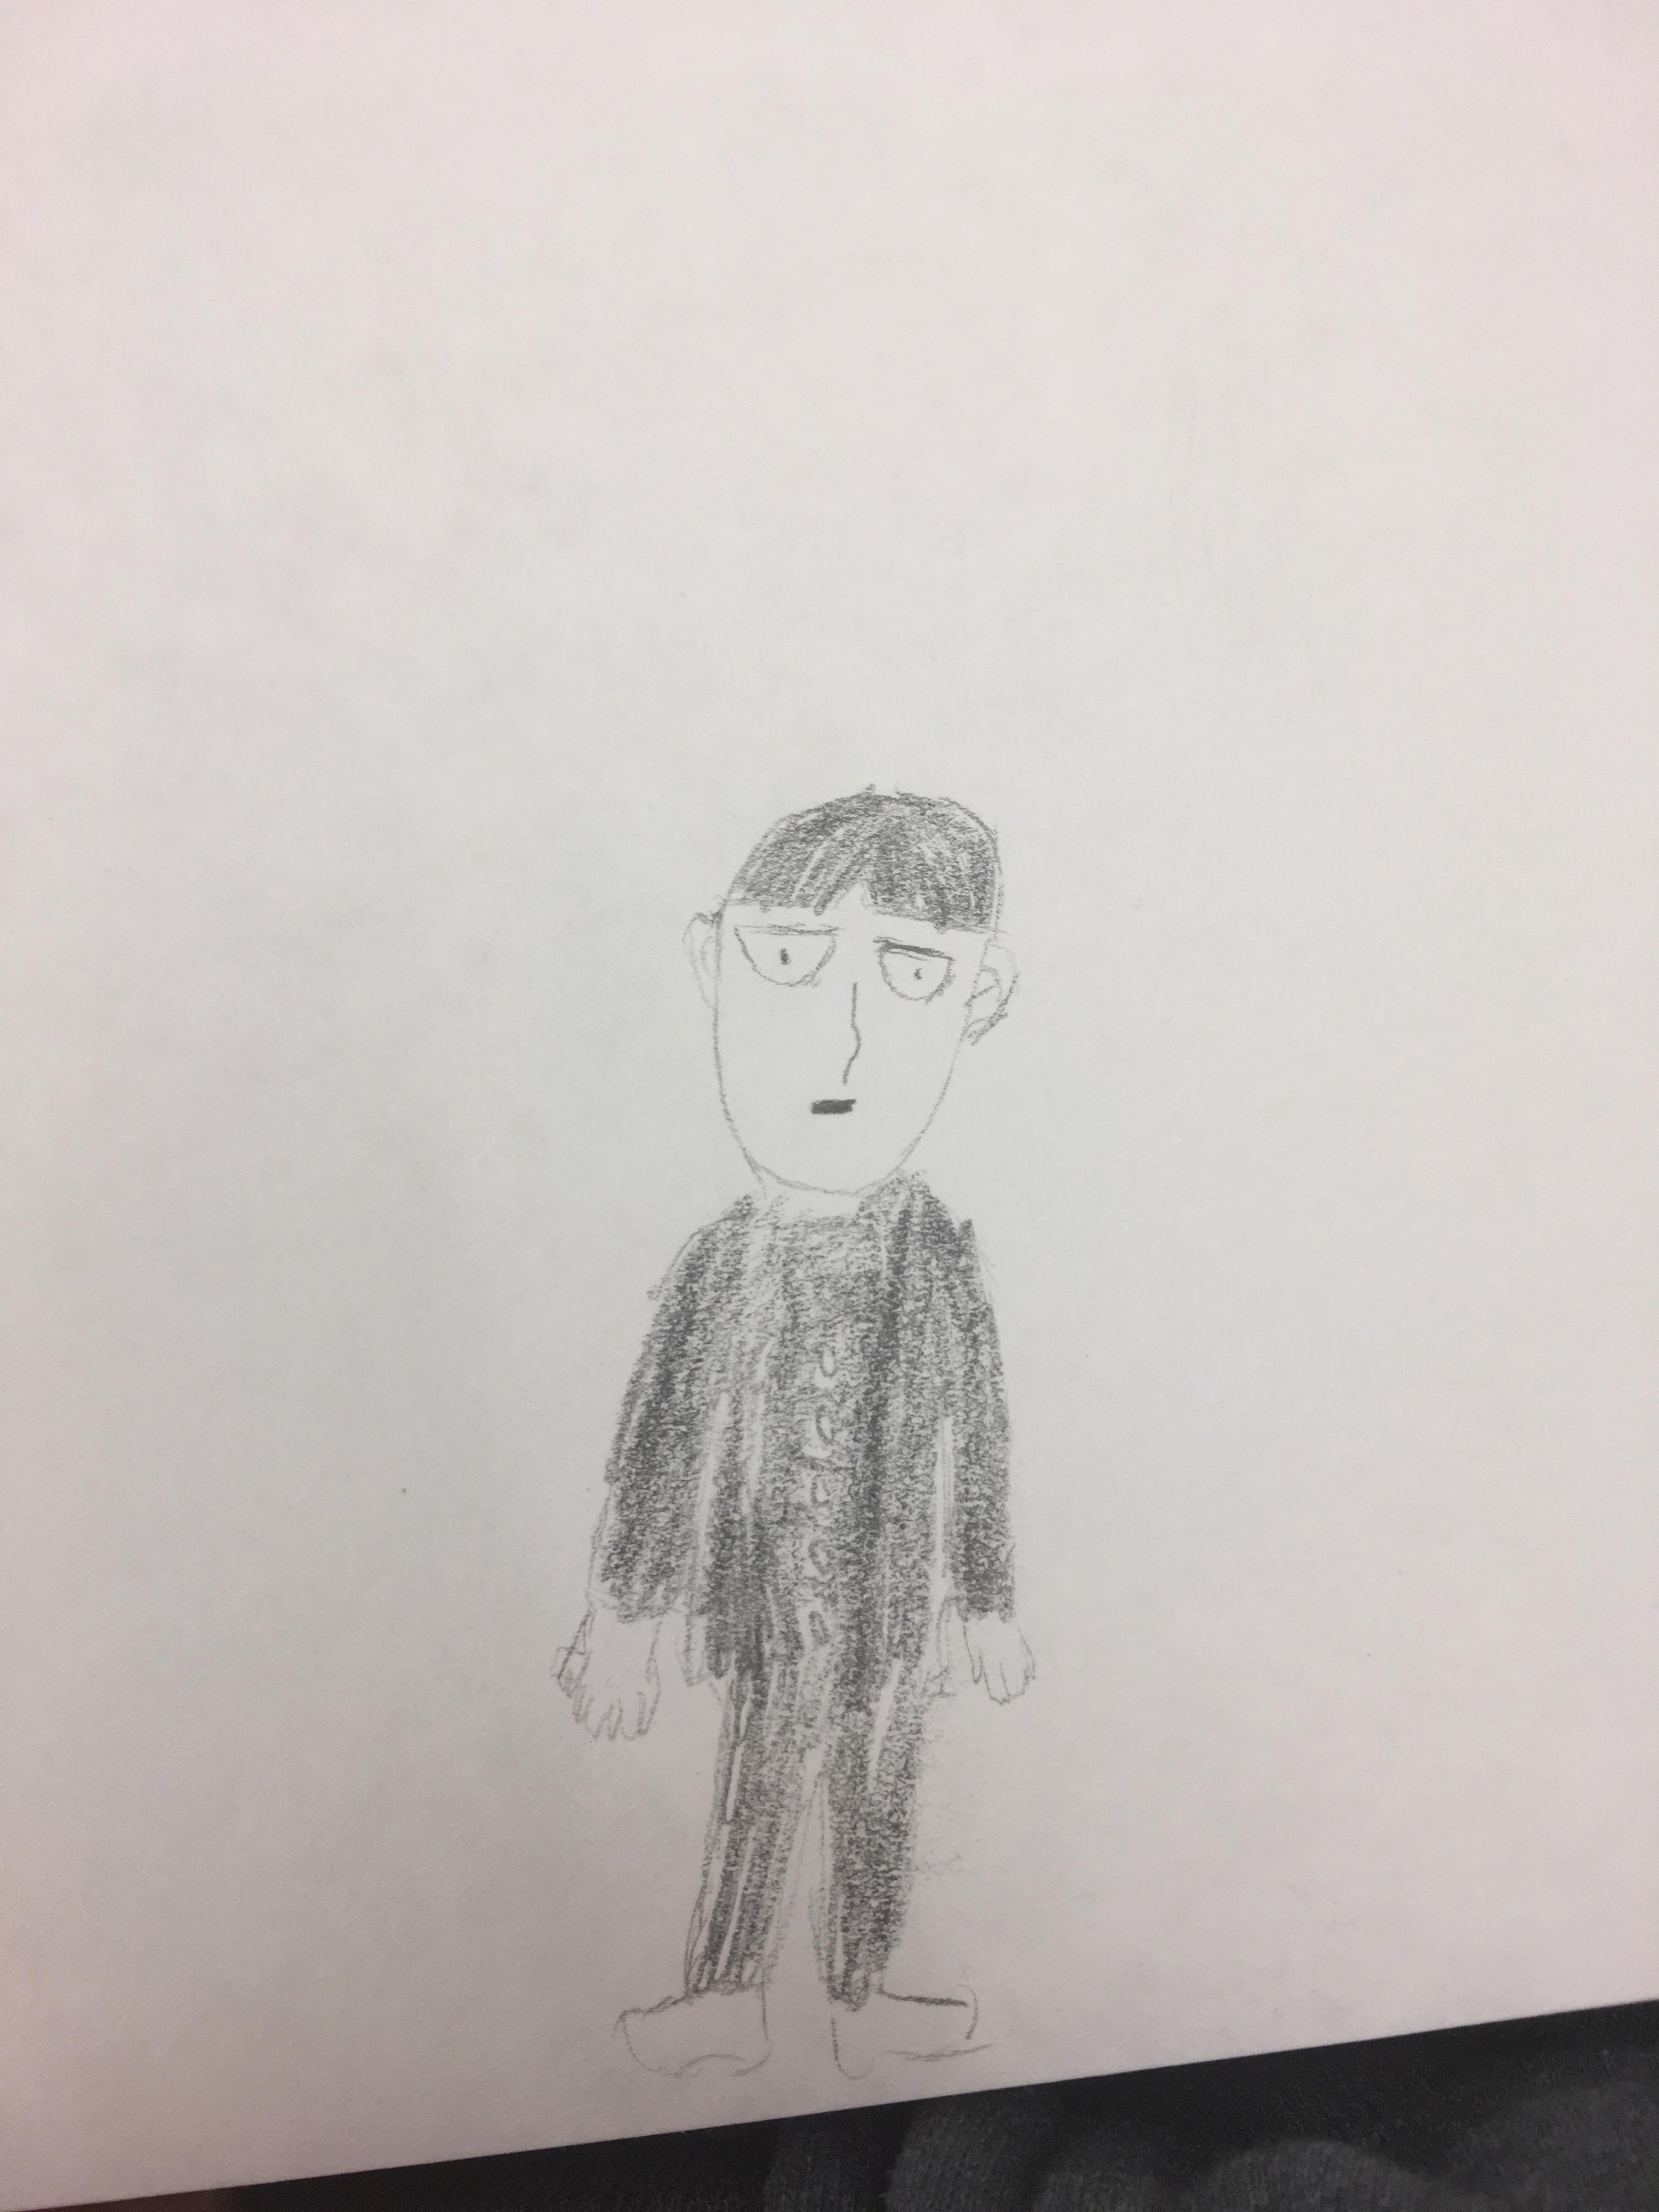 3024x4032 My Quick Mob Drawing. I Think I'M Close To One's Starting Level